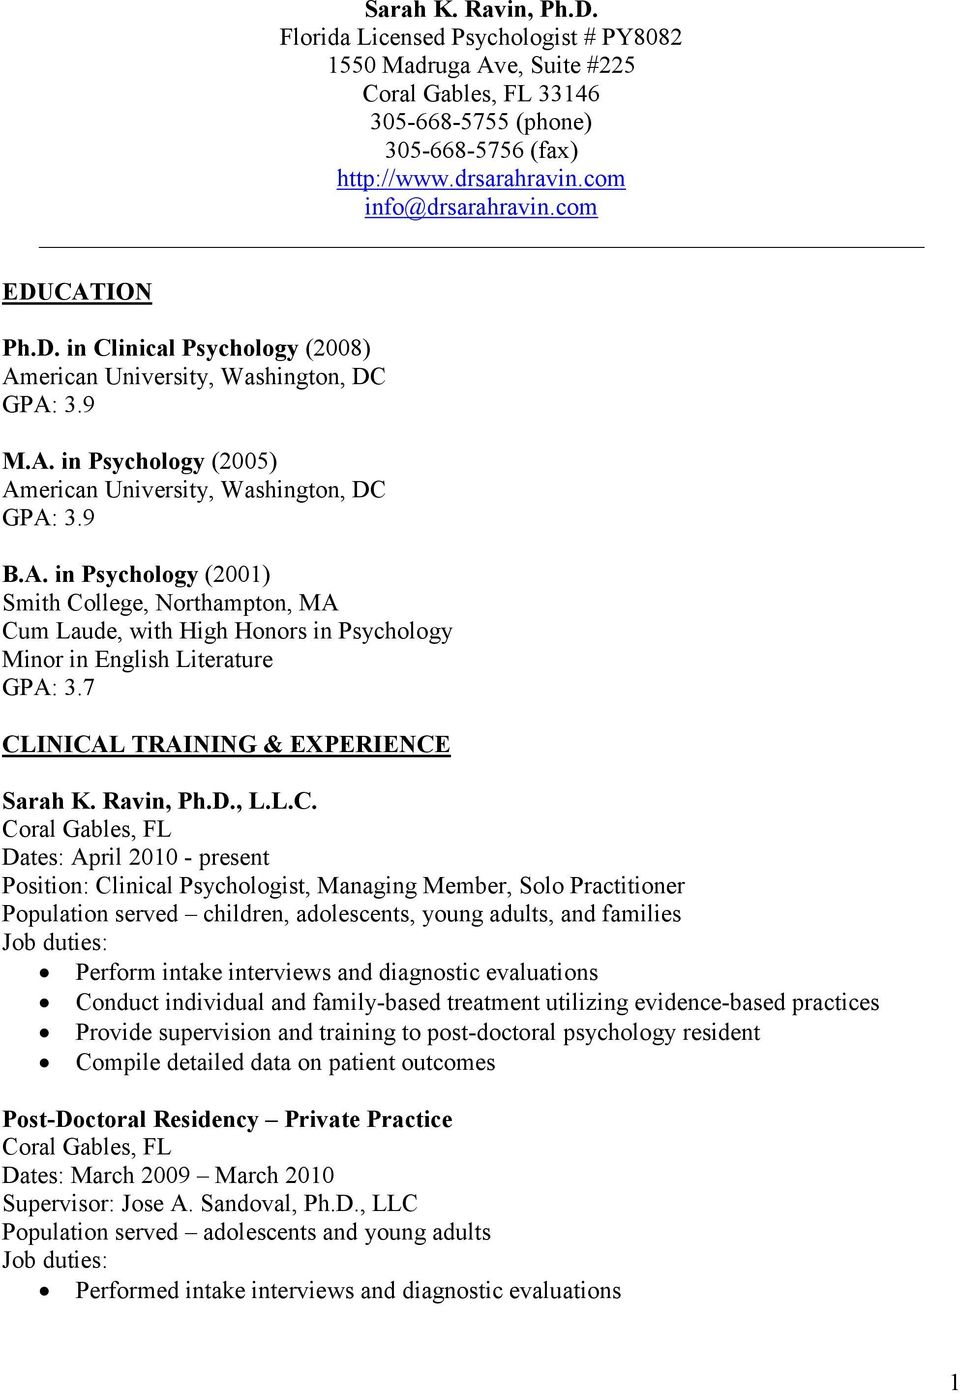 7 CLINICAL TRAINING & EXPERIENCE Sarah K. Ravin, Ph.D., L.L.C. Coral Gables, FL Dates: April 2010 - present Position: Clinical Psychologist, Managing Member, Solo Practitioner Population served